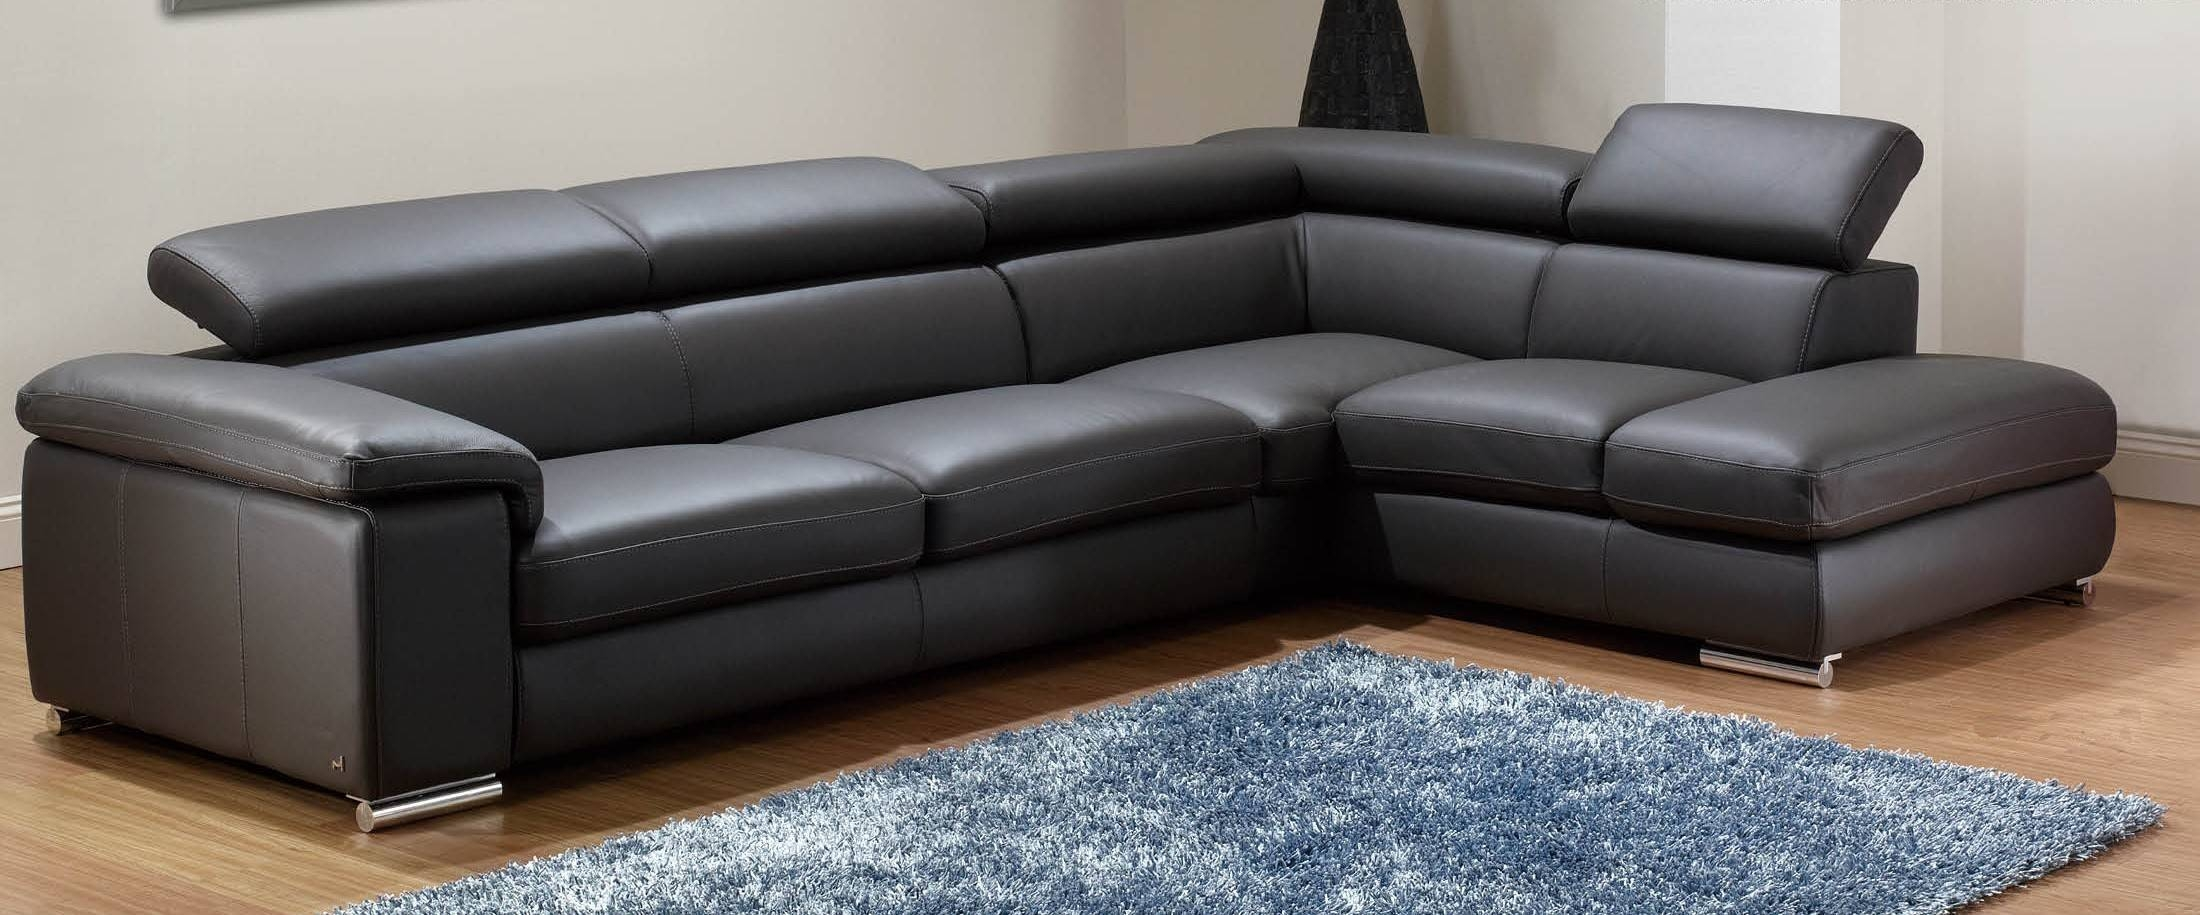 Top Graded Italian Genuine Leather Sofa Sectional Living Room Sofa for Modern Reclining Leather Sofas (Image 30 of 30)